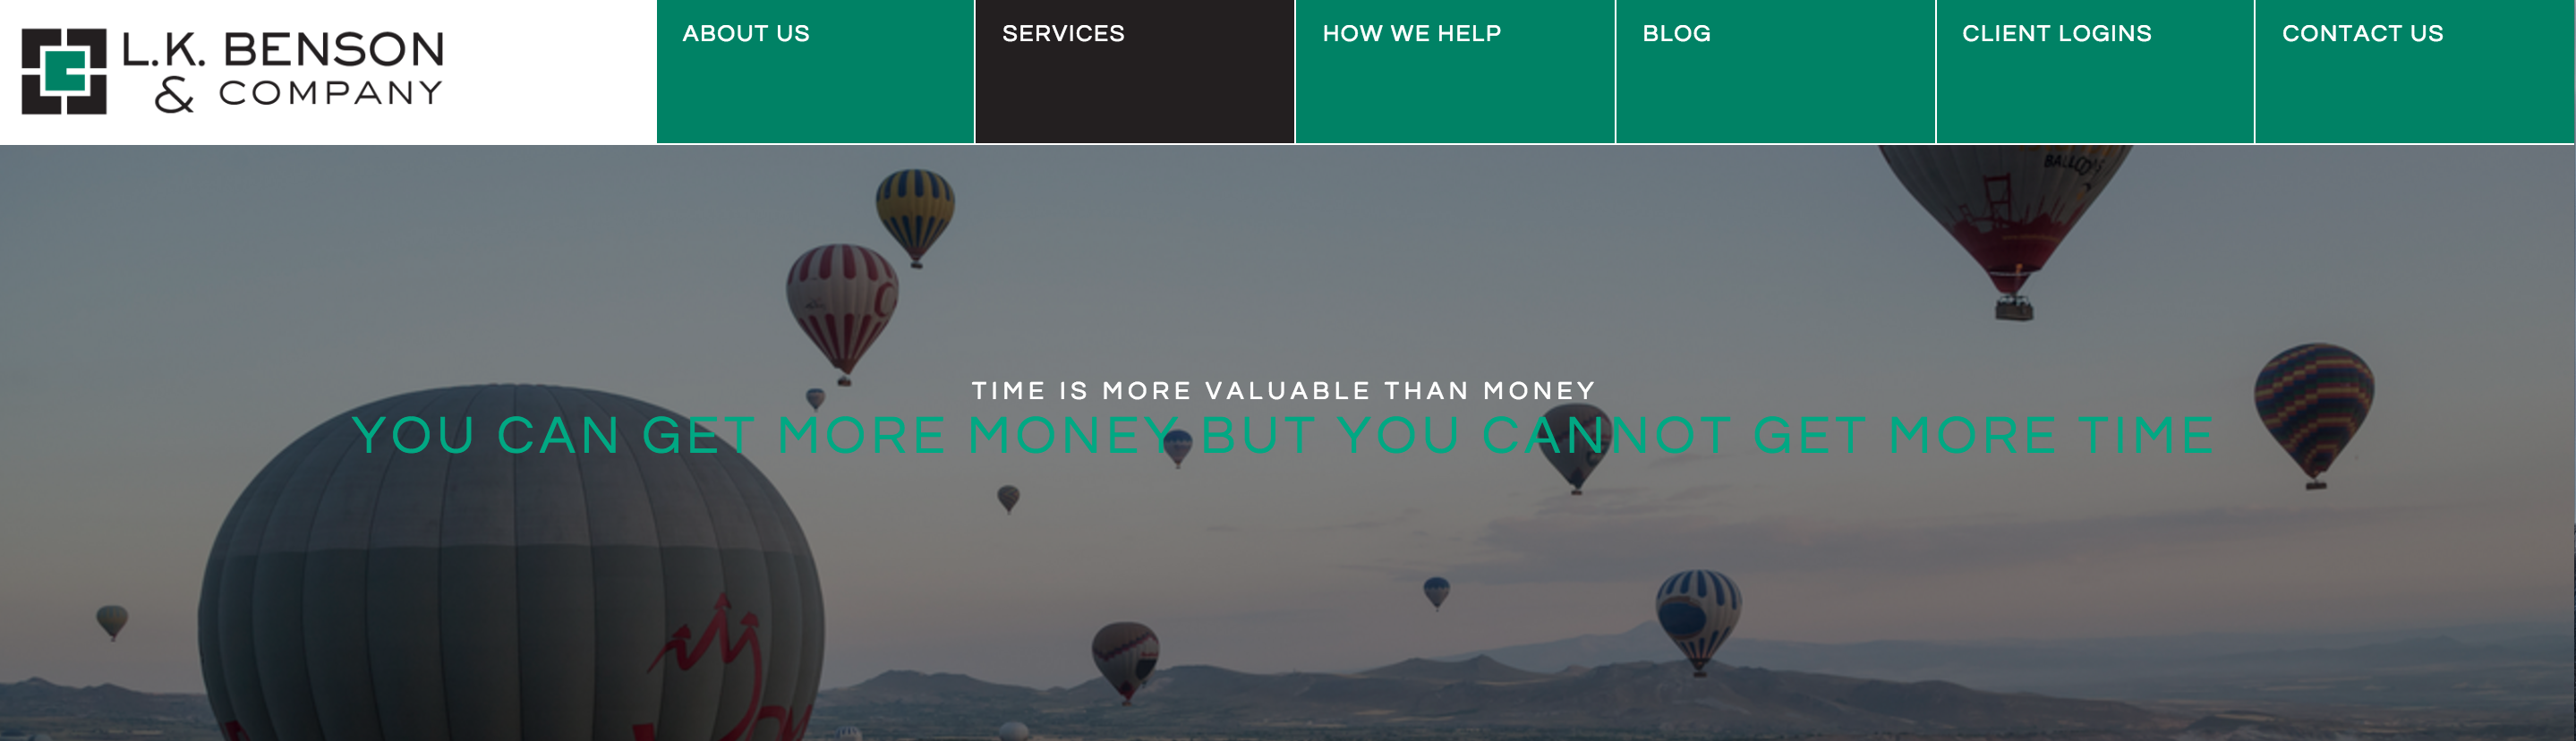 example of a great financial advisor website